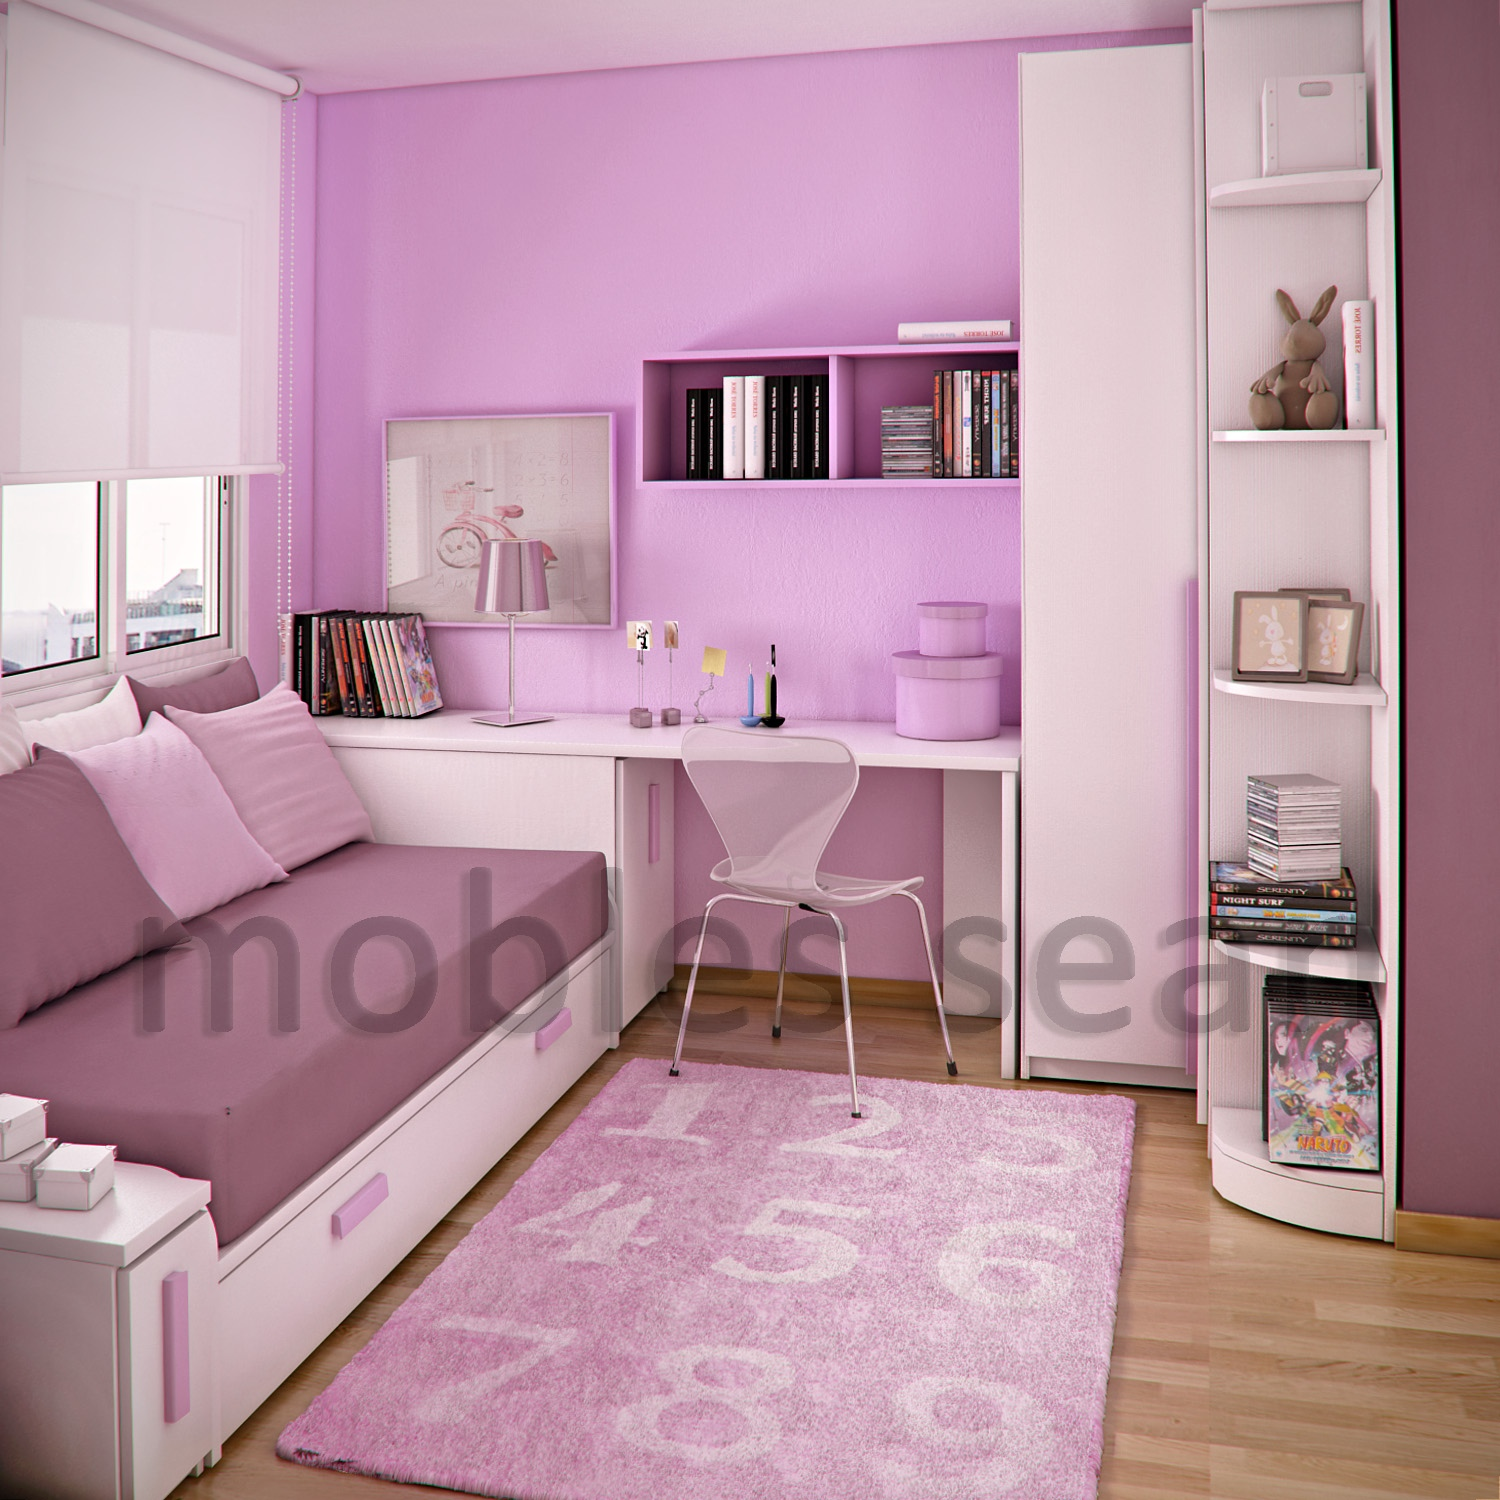 Space Saving Designs For Small Kids Rooms Interiors Inside Ideas Interiors design about Everything [magnanprojects.com]